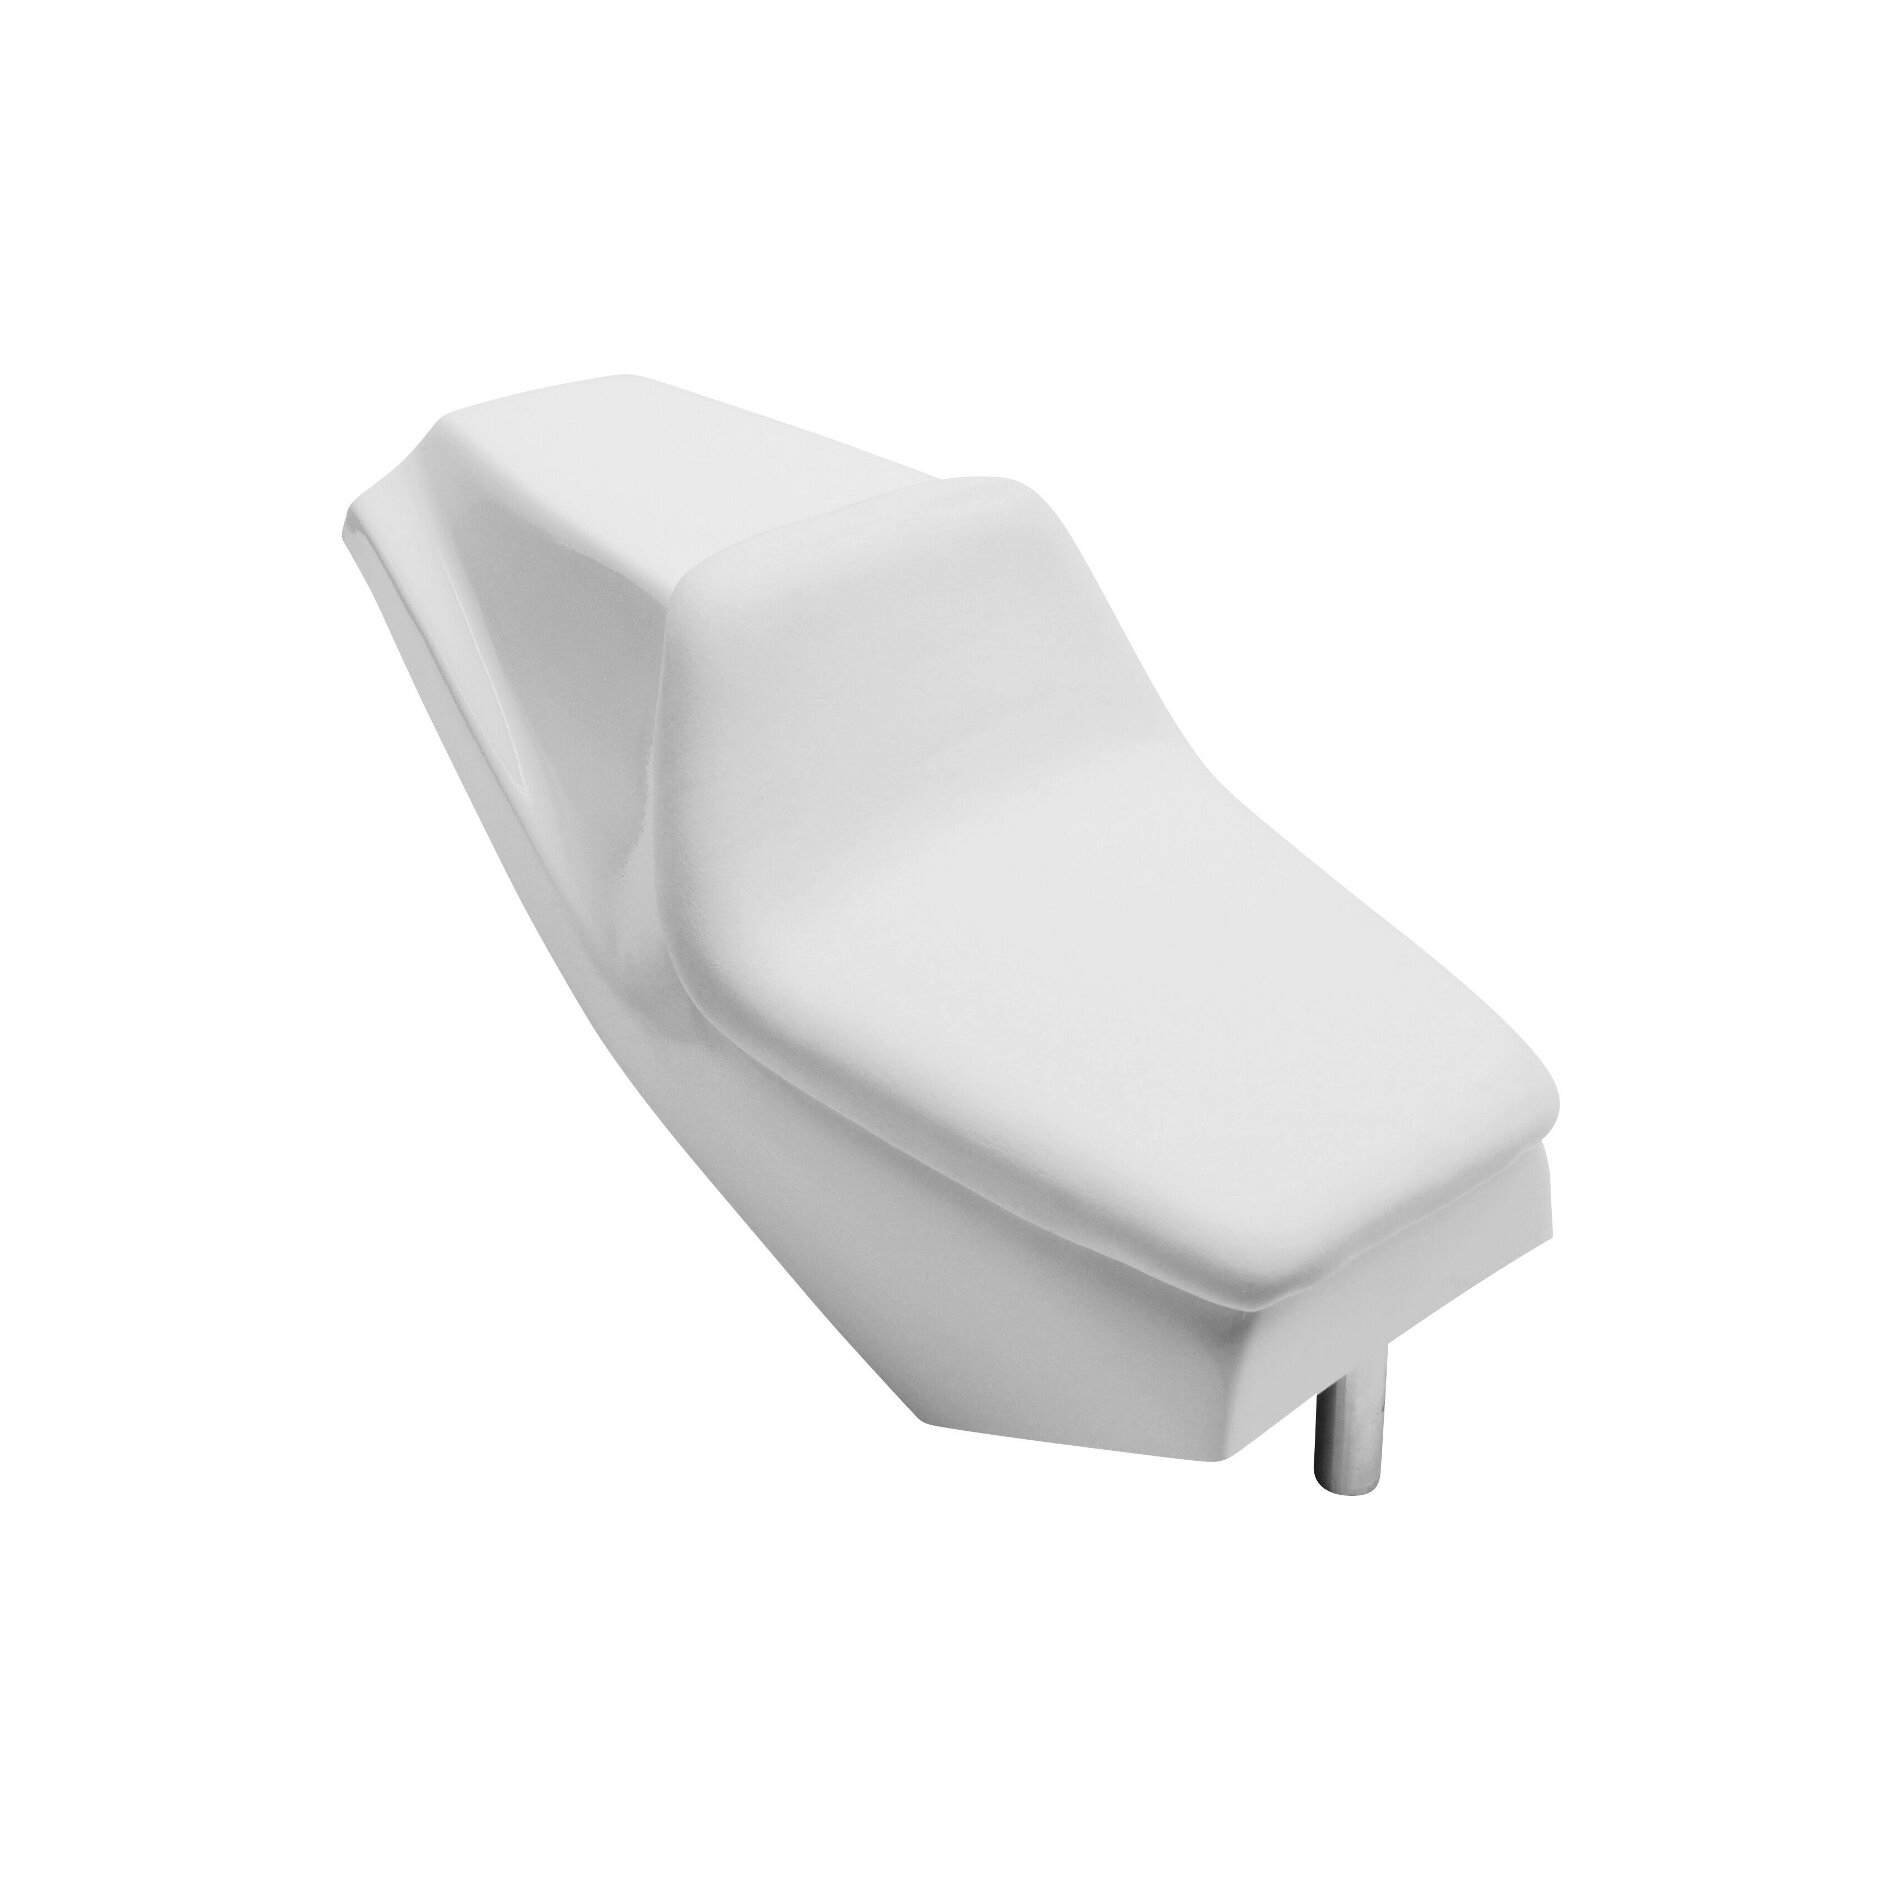 Selle polyester Grand Prix blanche avec mousse